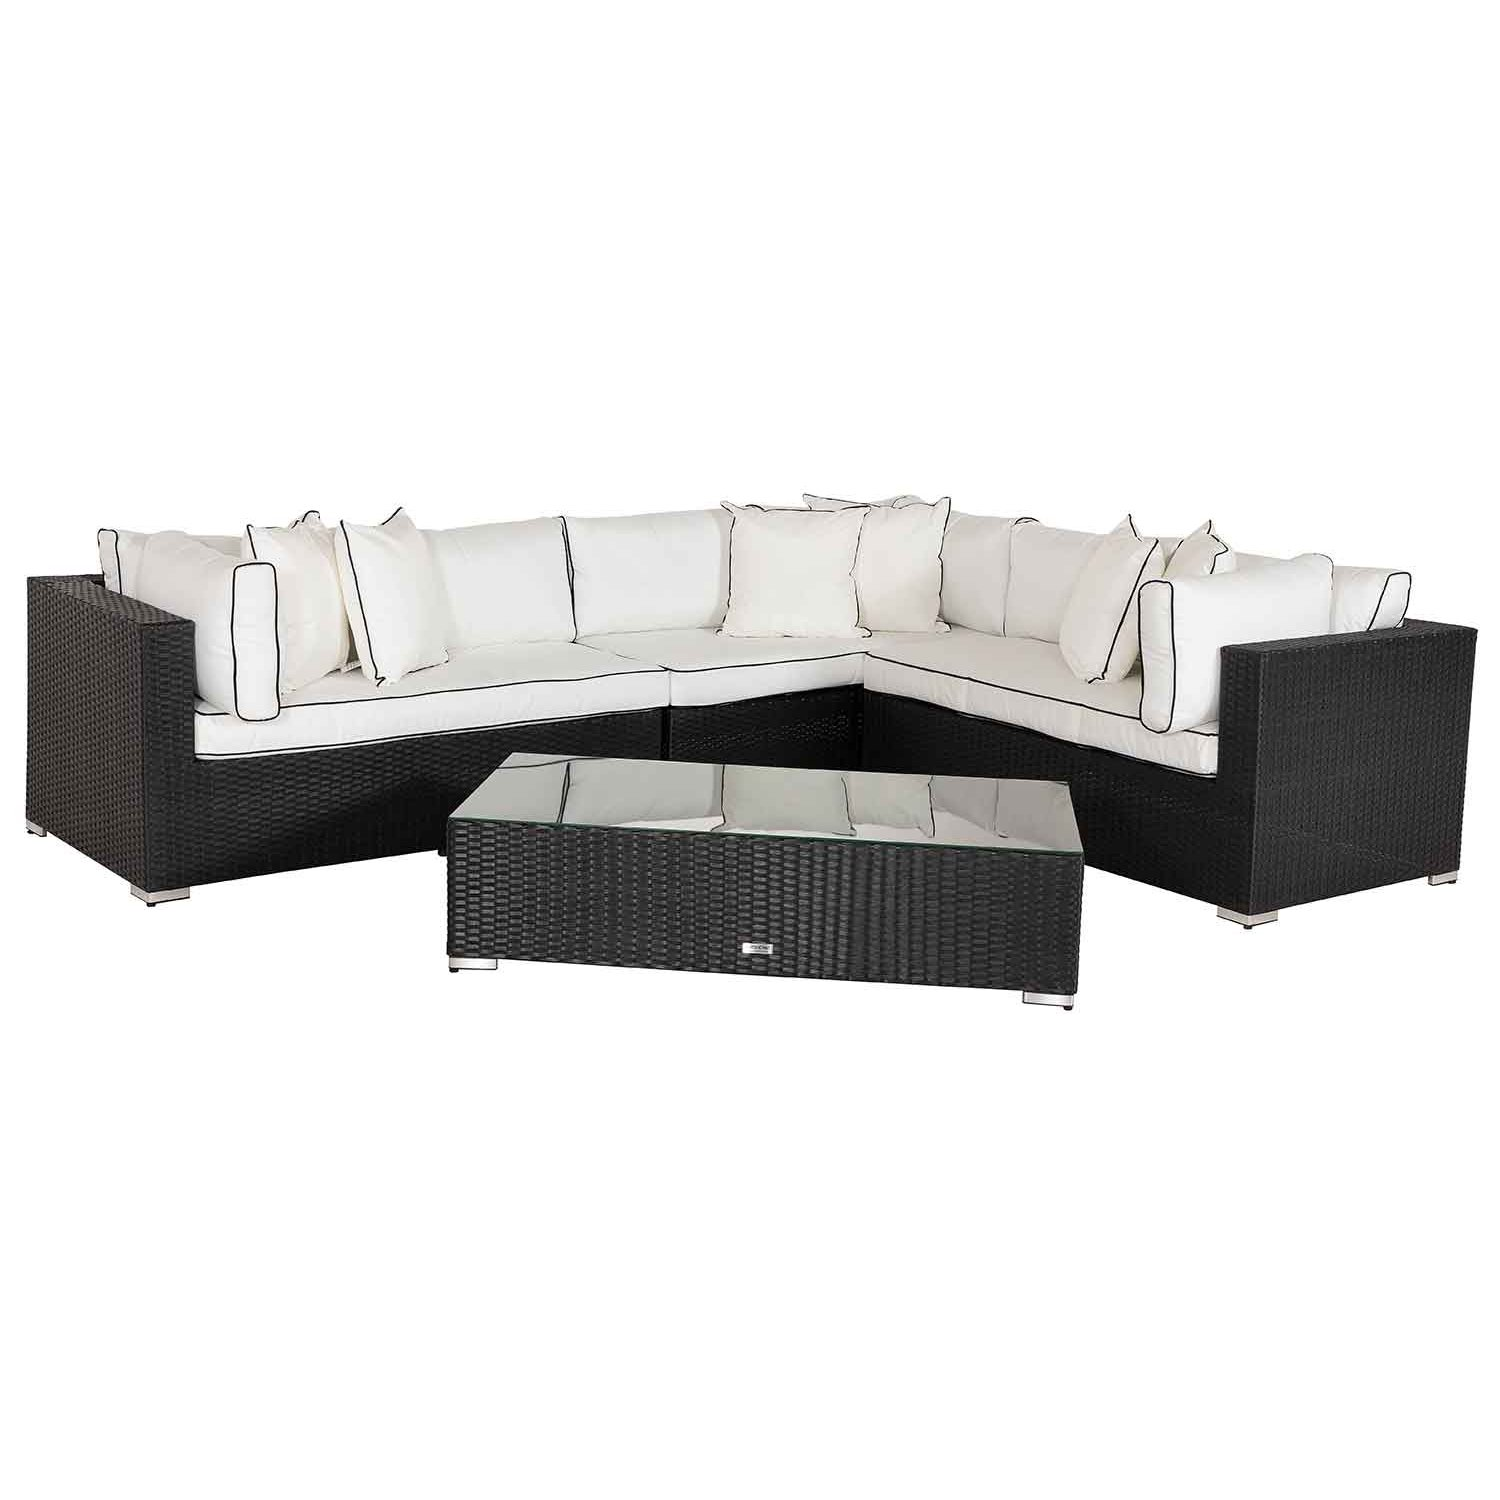 image-Monaco Rattan Garden Lefthand Corner Sofa Set in Black and Vanilla